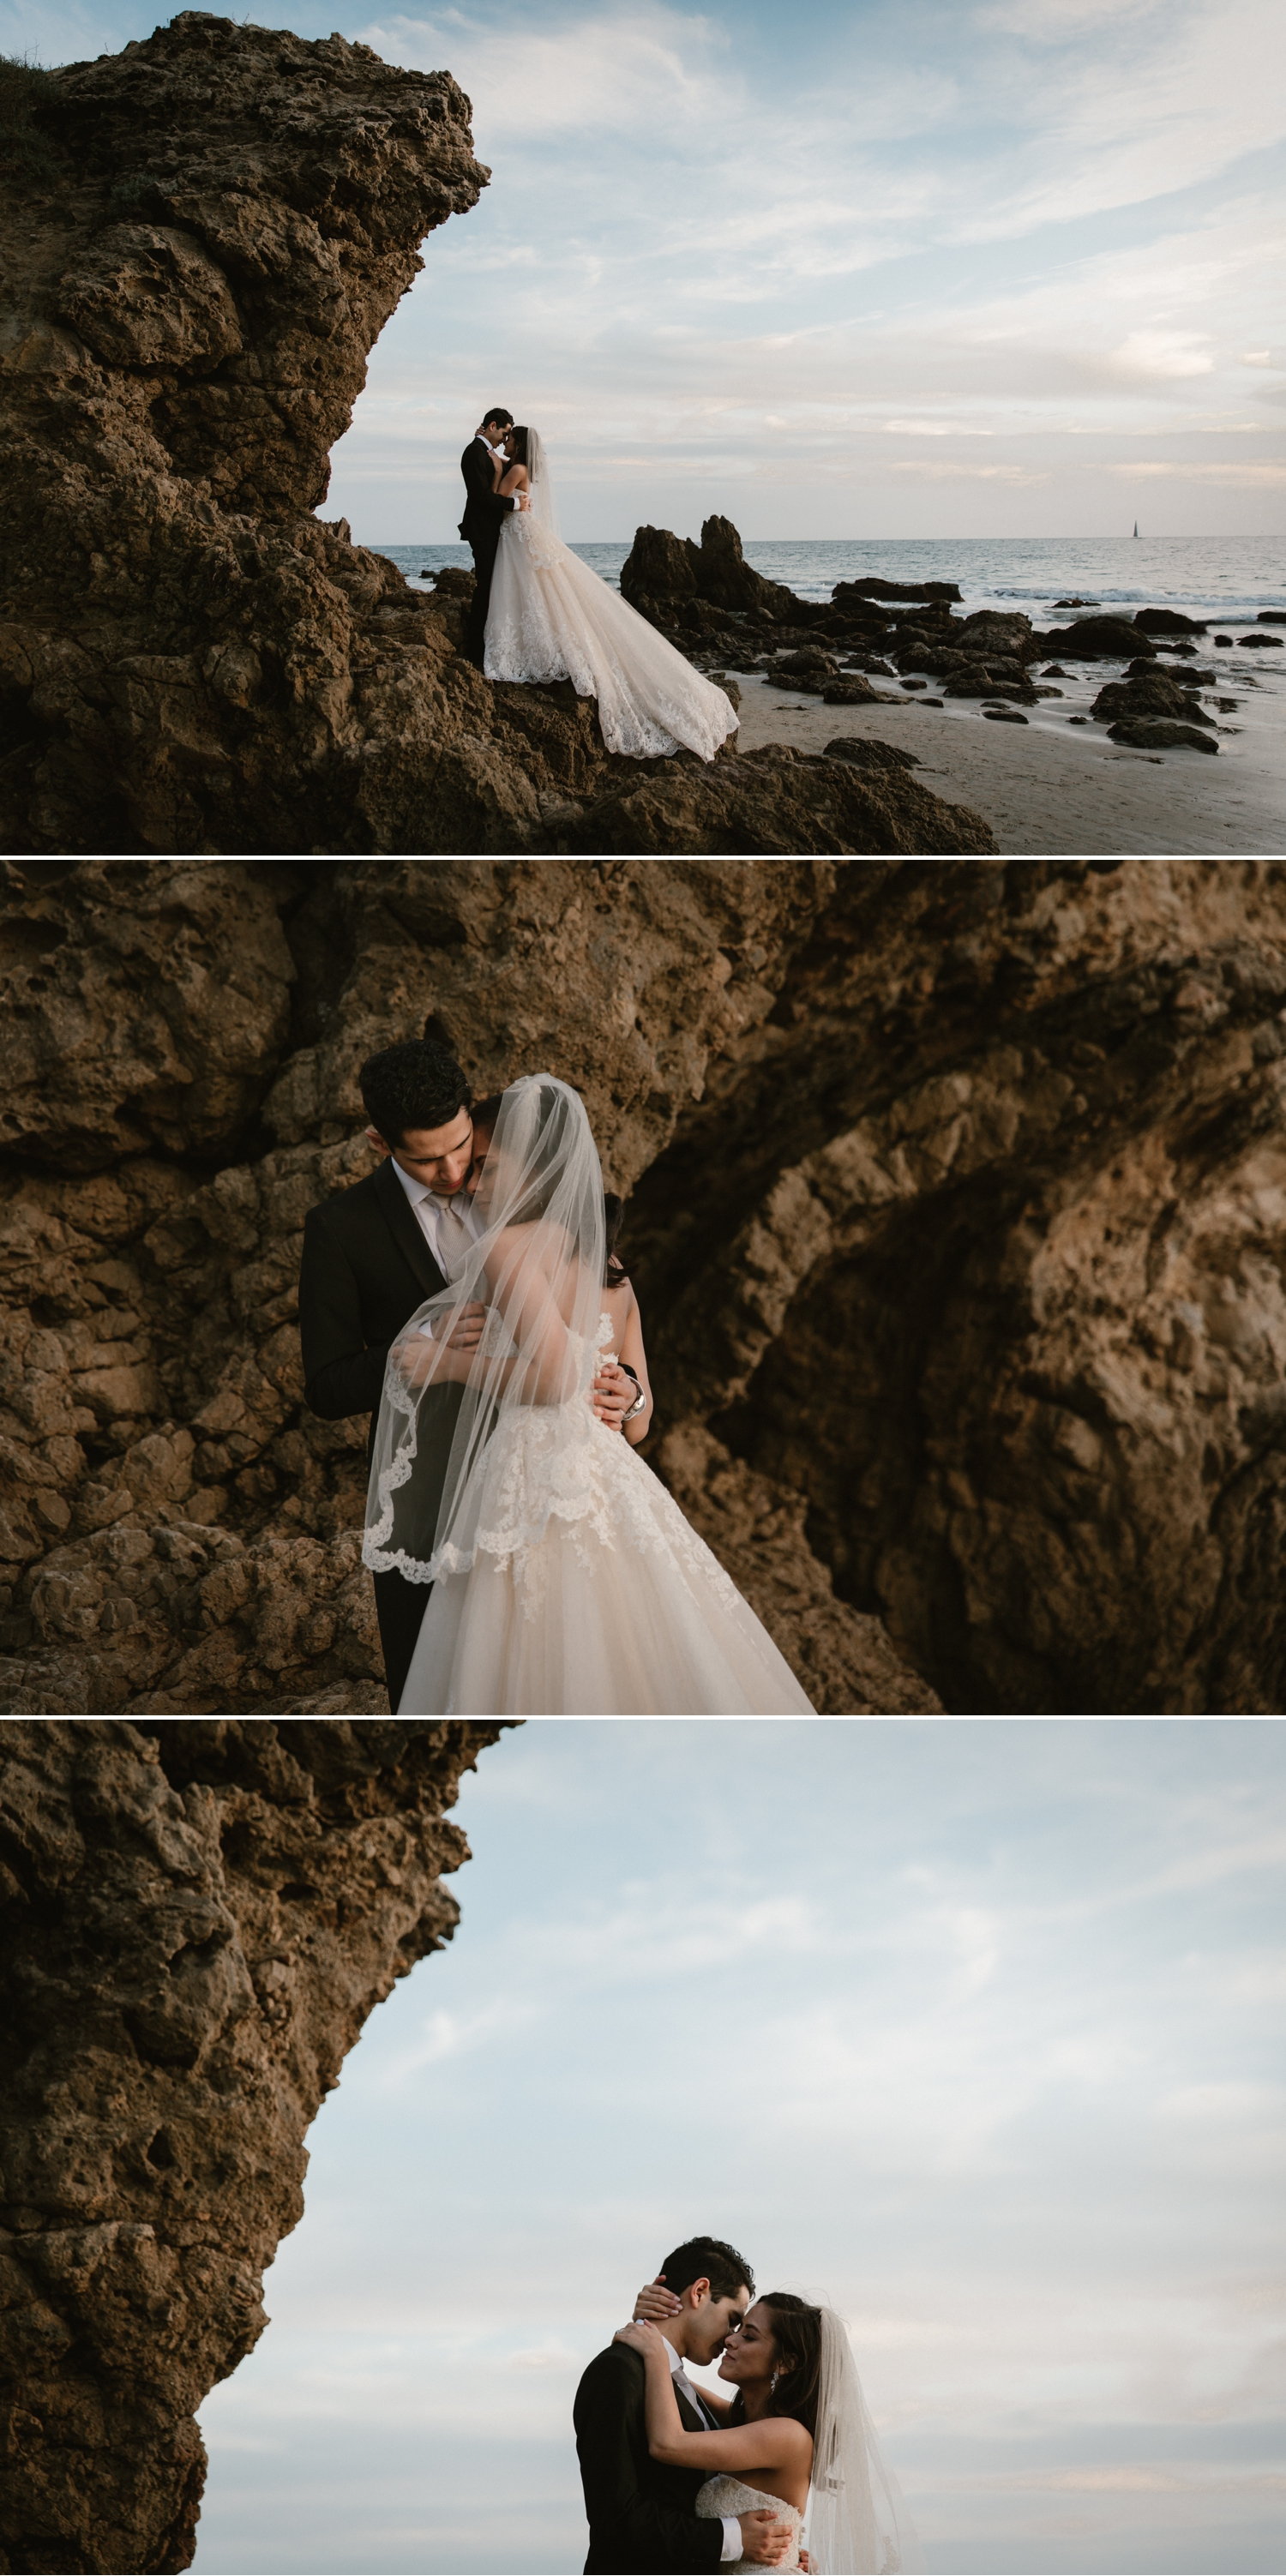 Beach wedding portraits at Inspiration Point in Corona del Mar by Paige Nelson